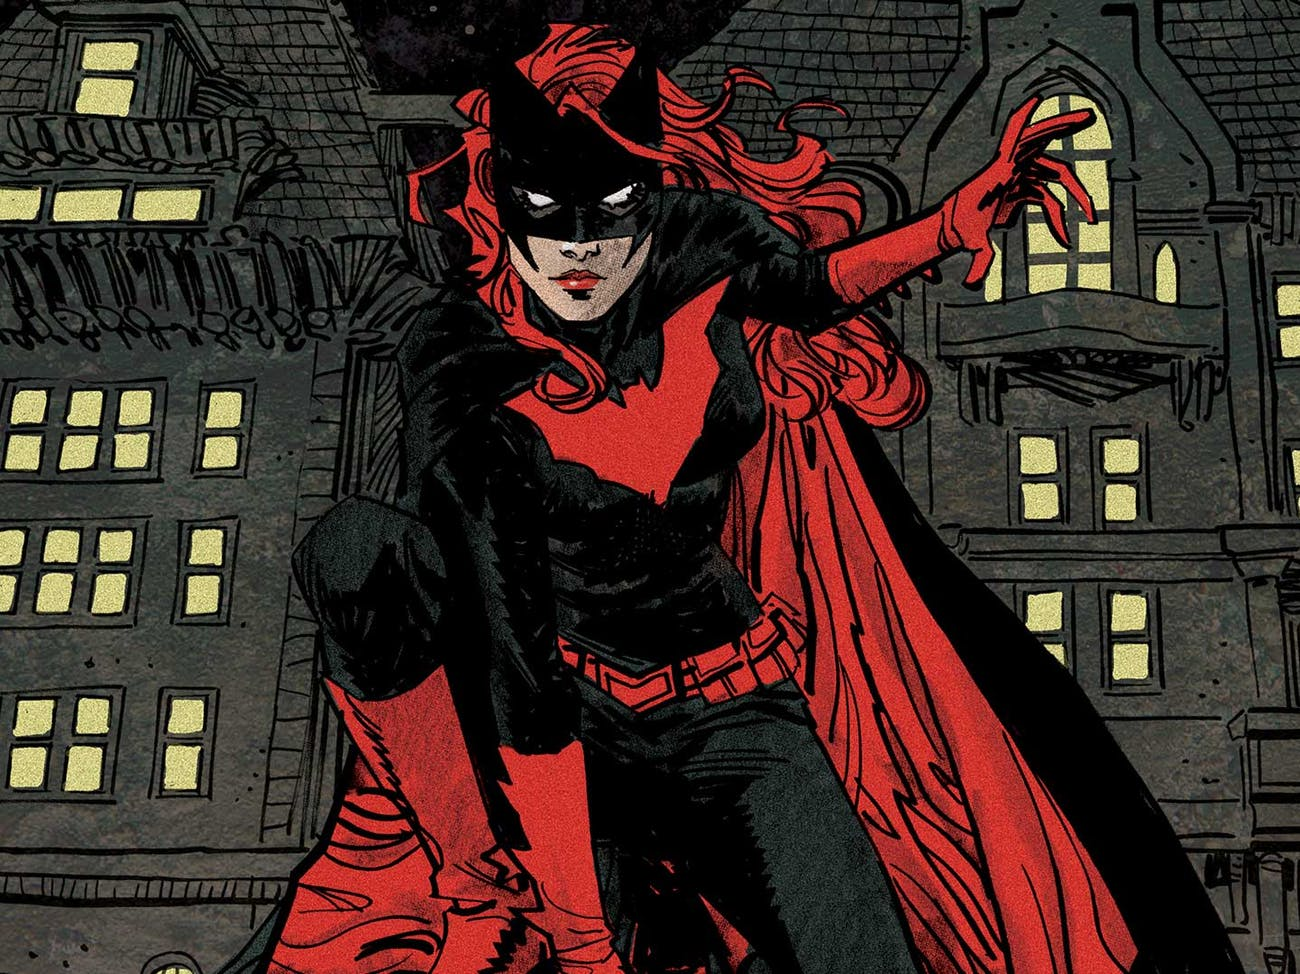 The CW's 'Batwoman': Release Date, Plot, Cast, and More You Should